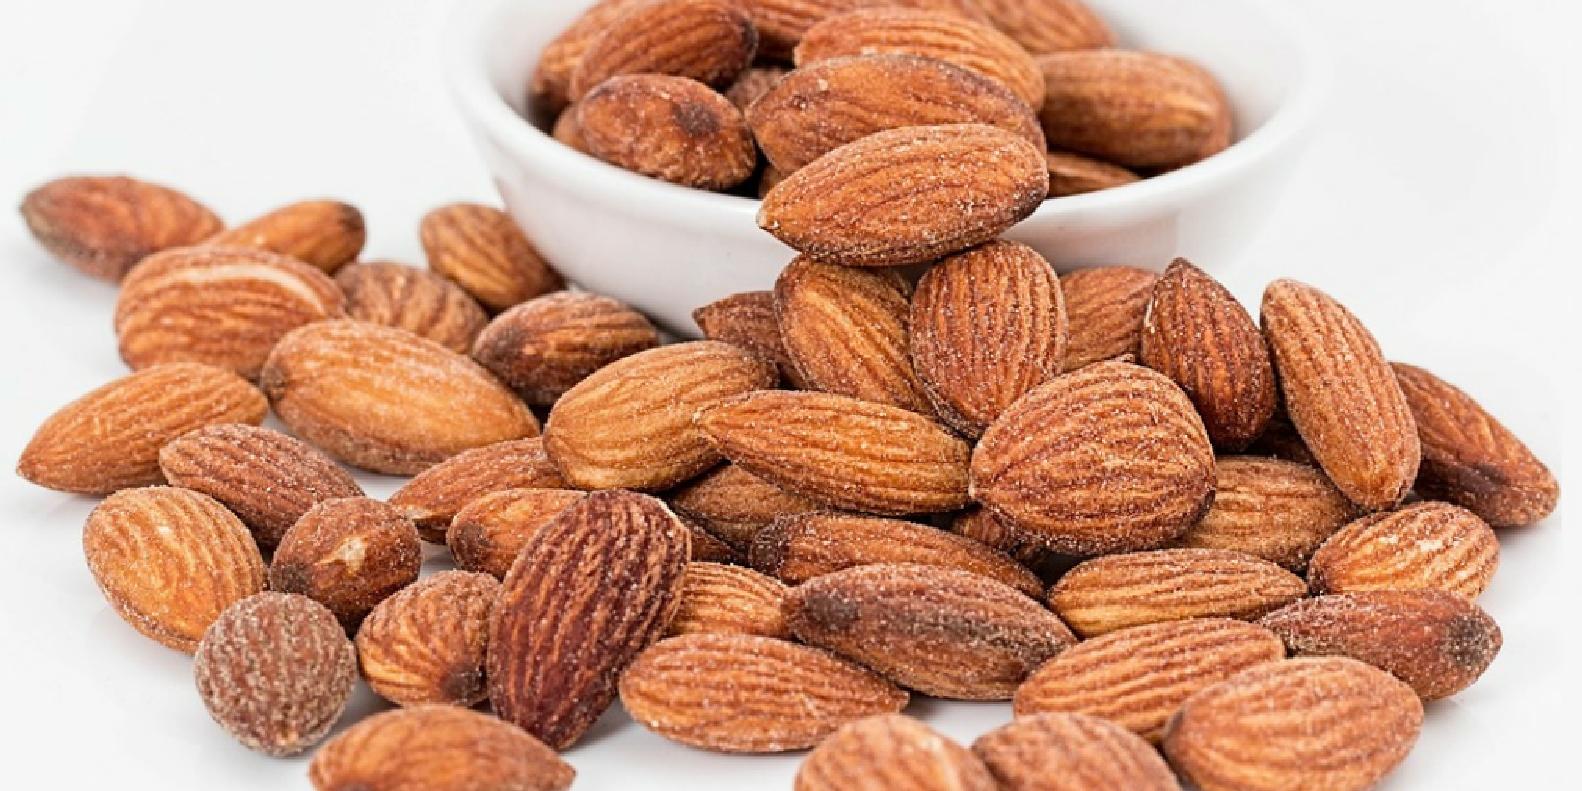 A Nutty Diet Fights Colon Cancer Return Study Suggests Cancer